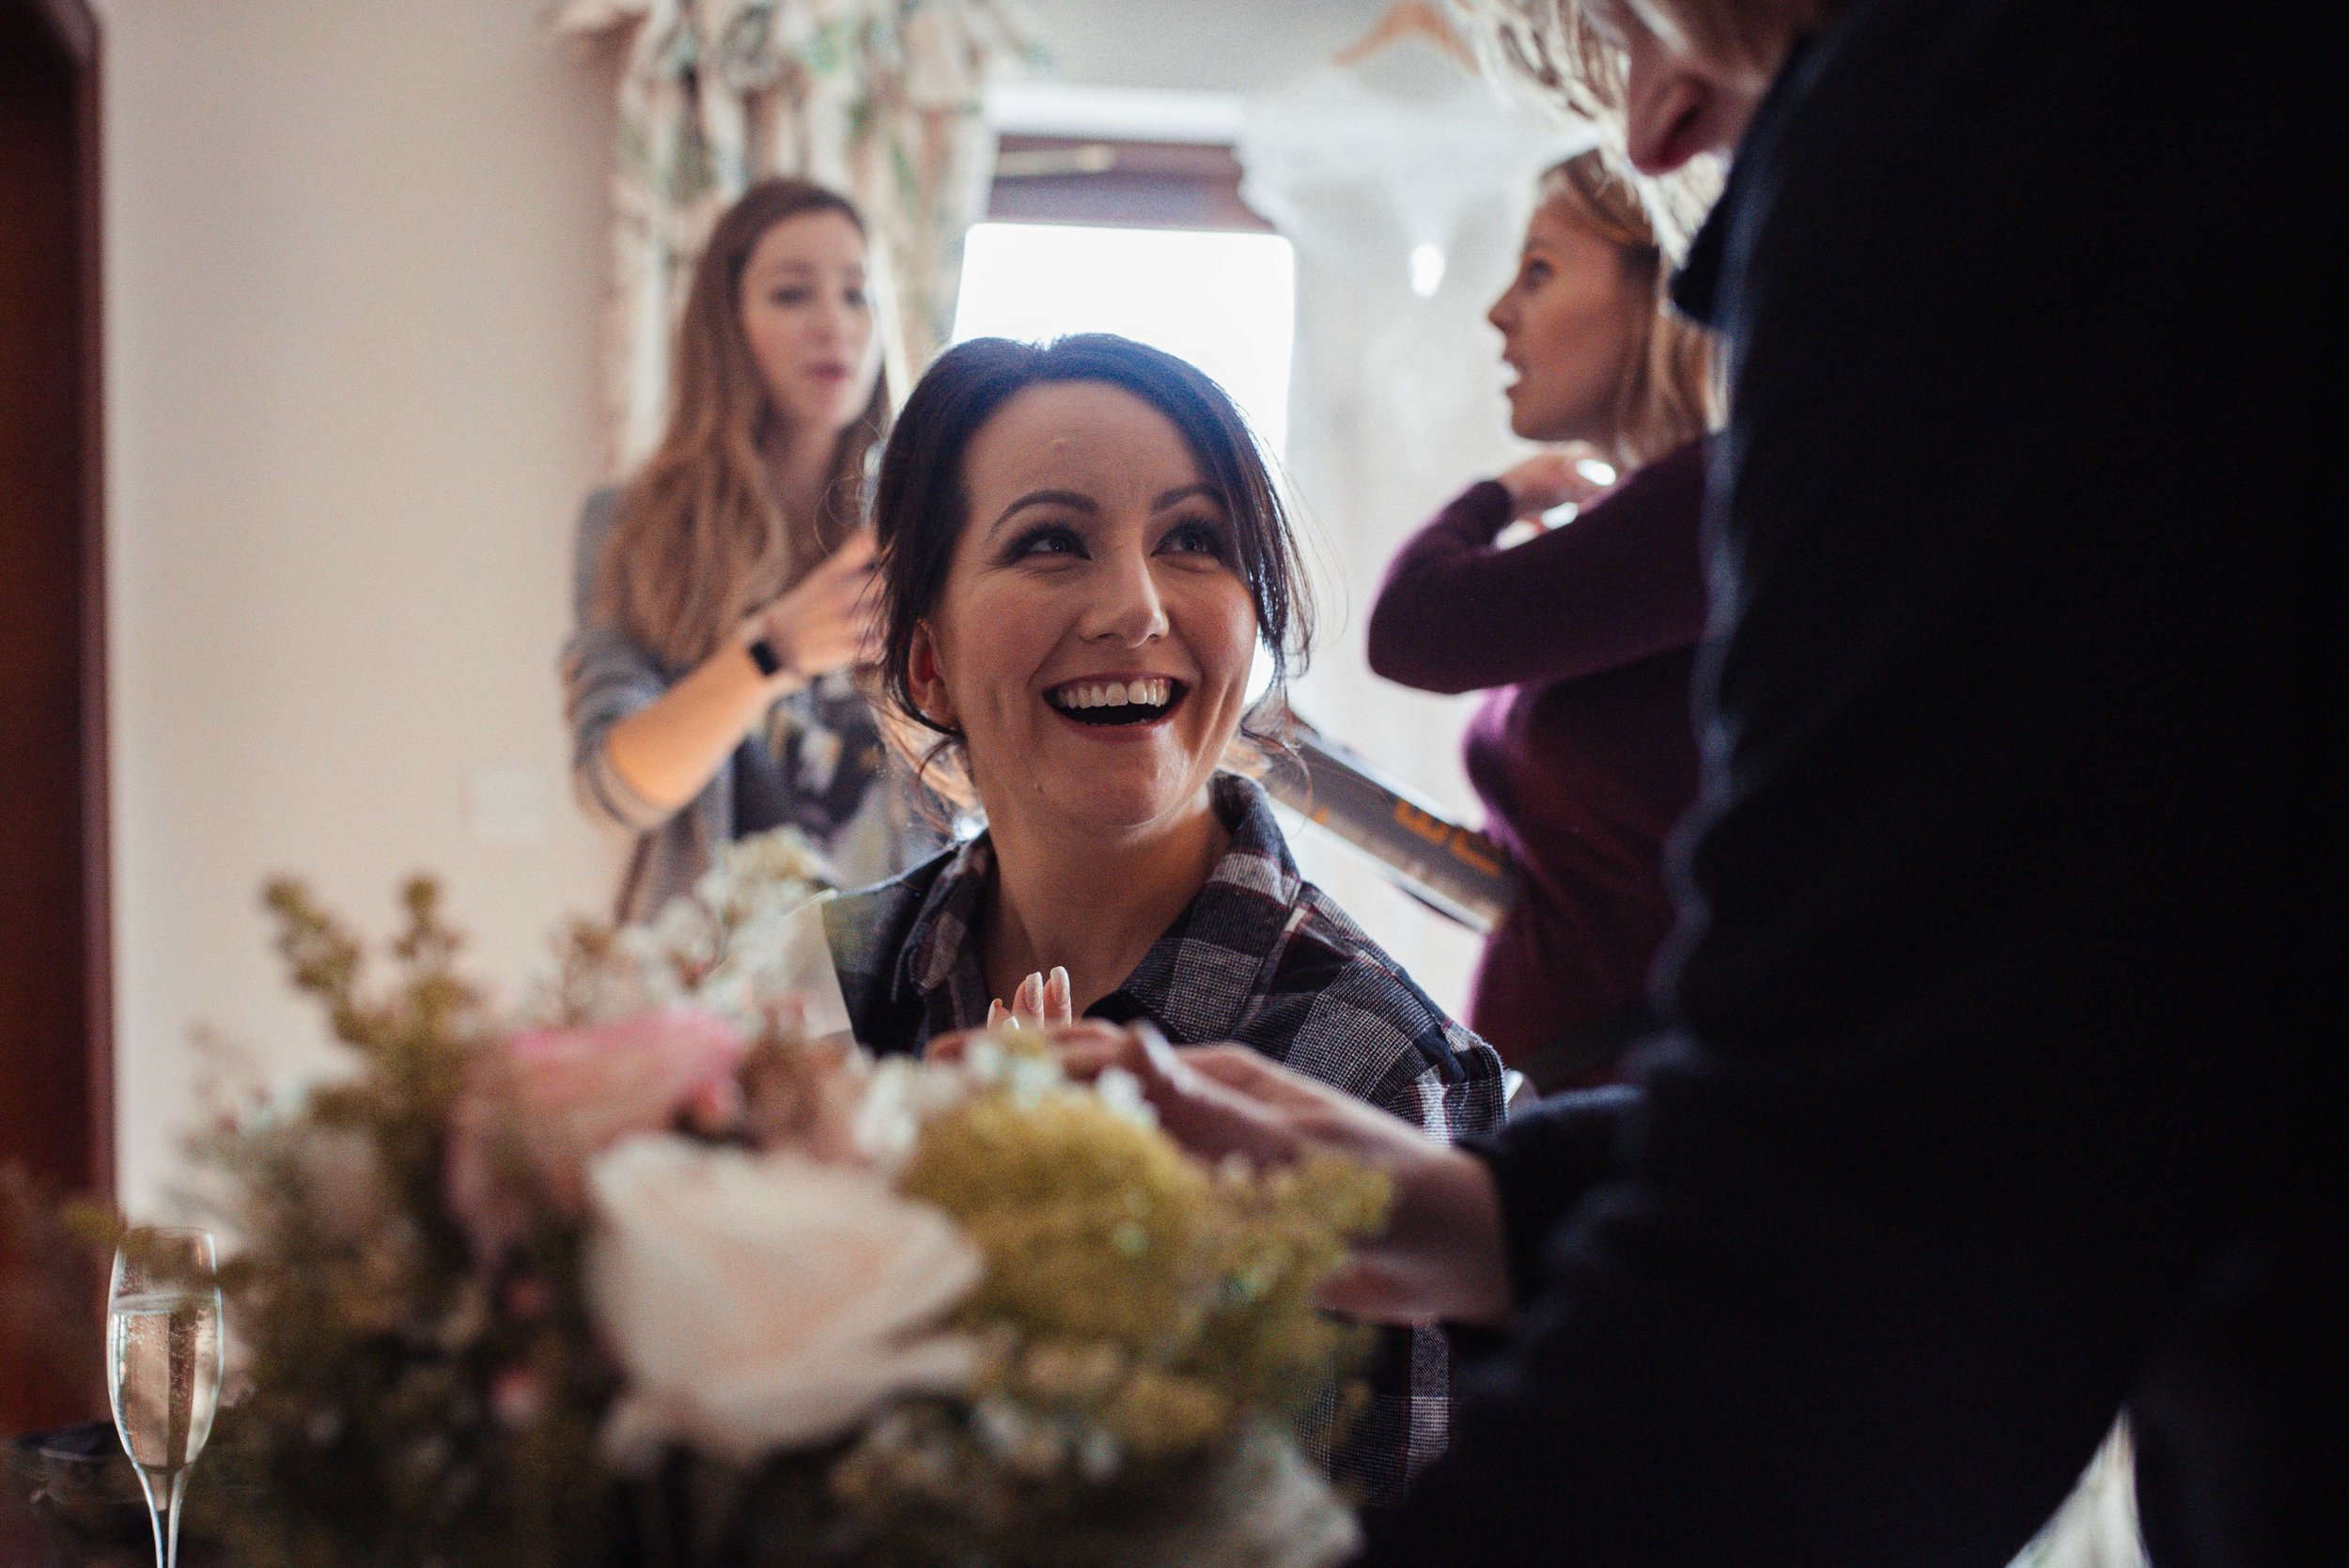 The bride sees her flowers for the first time